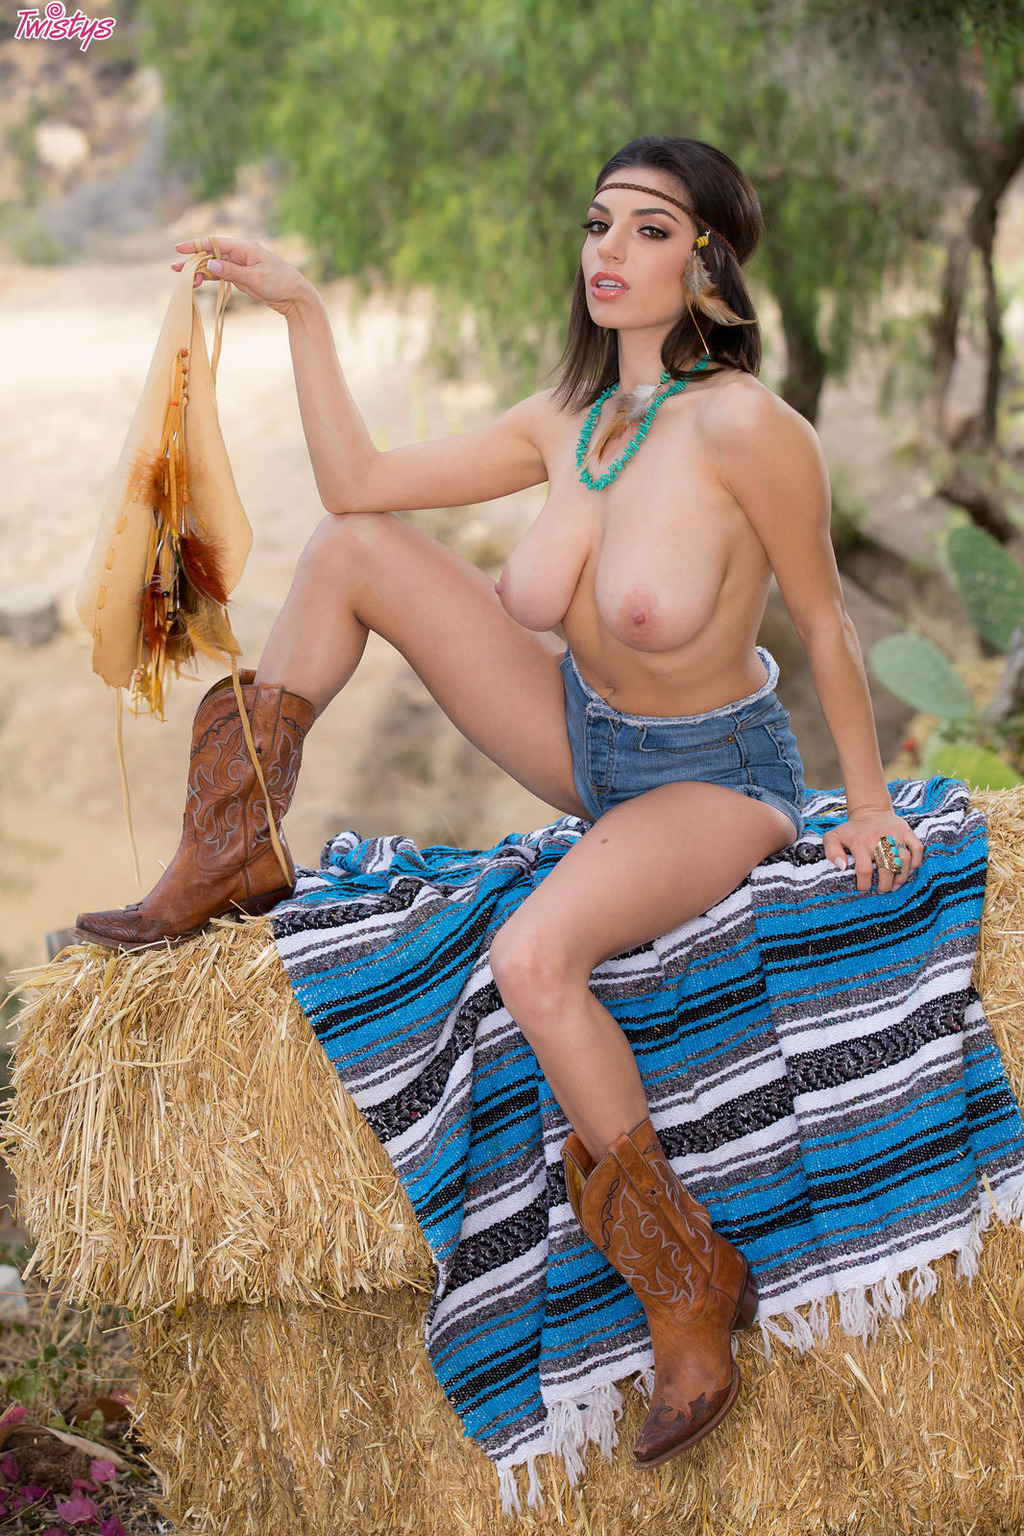 Amazing Darcie Dolce Shows Her Big Naturals Outdoors 02